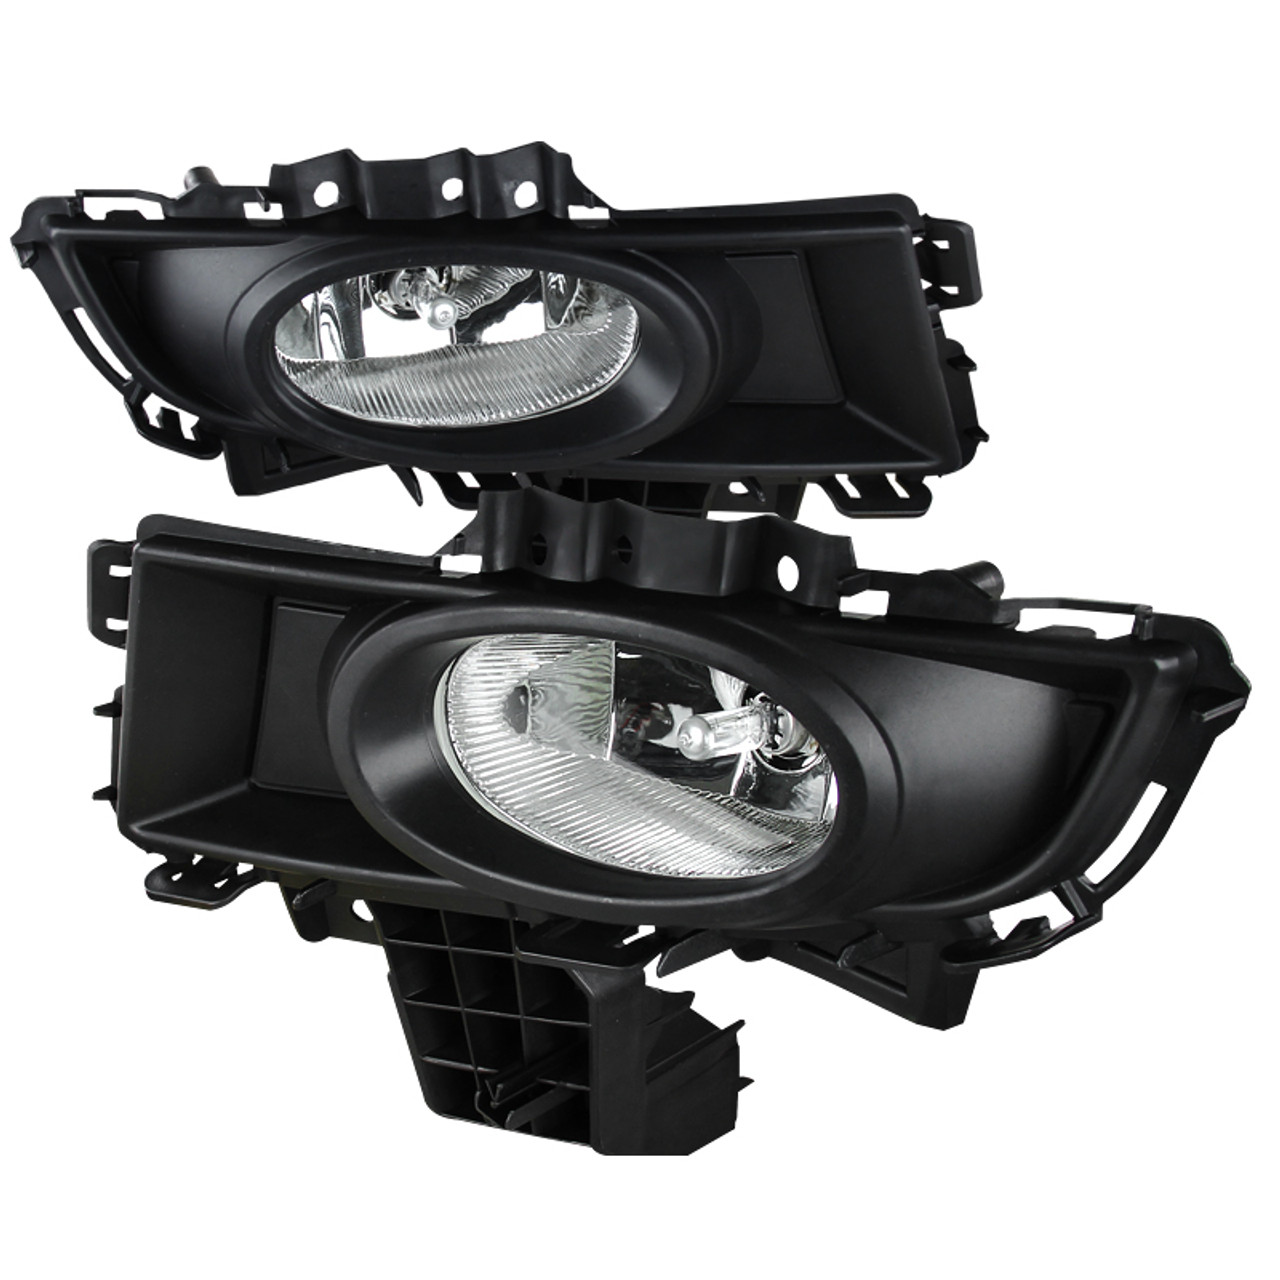 Fog Lights H11 12V 55W Lamp Bulb Fit For 2007-2009 Mazda 3 Front Left Bumper Driving Lamps With Switch Clear Lens